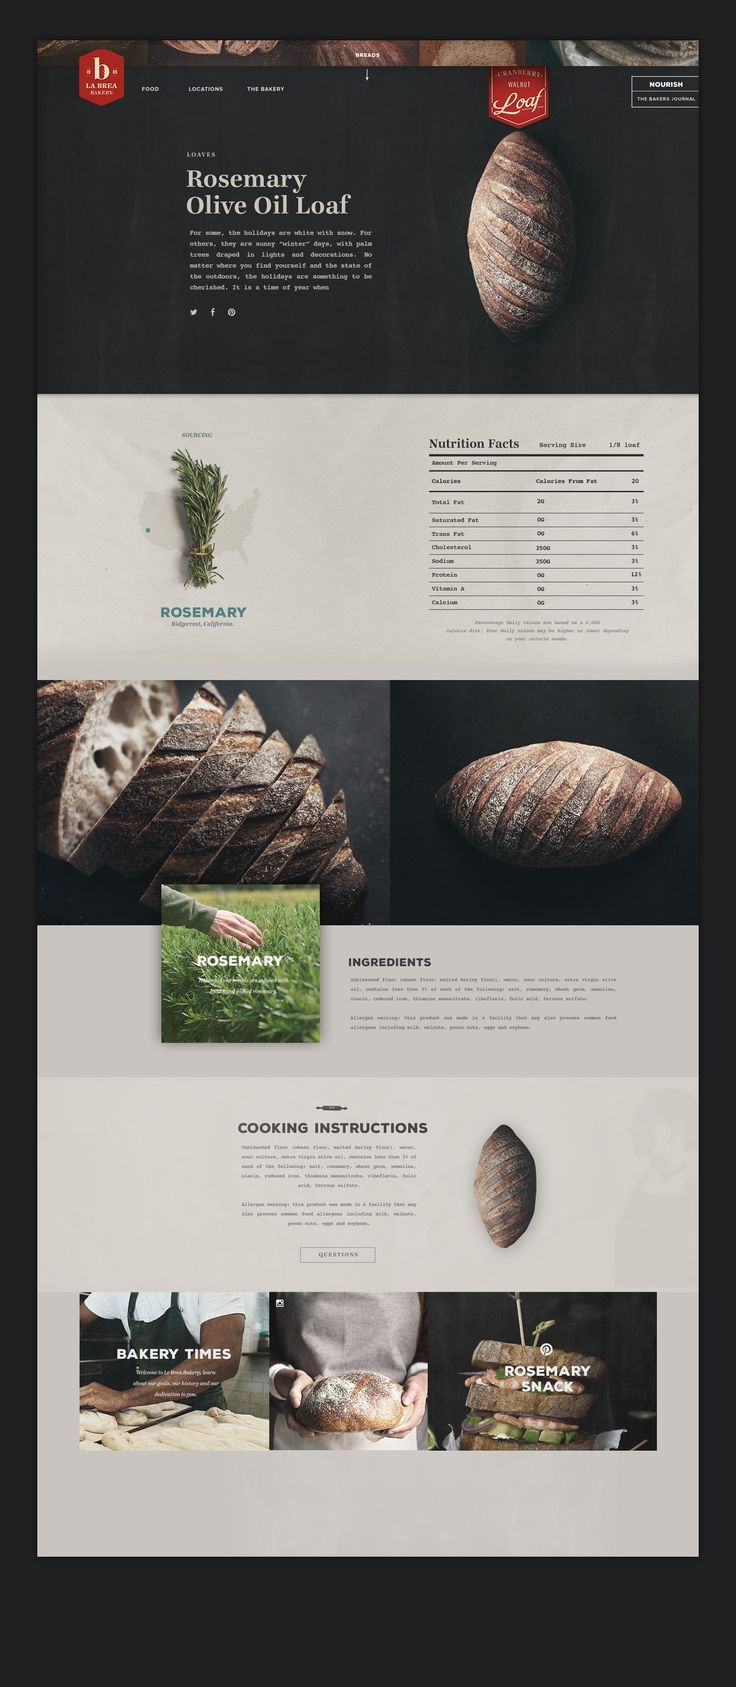 Like the appropriate use of different typefaces. Great images!